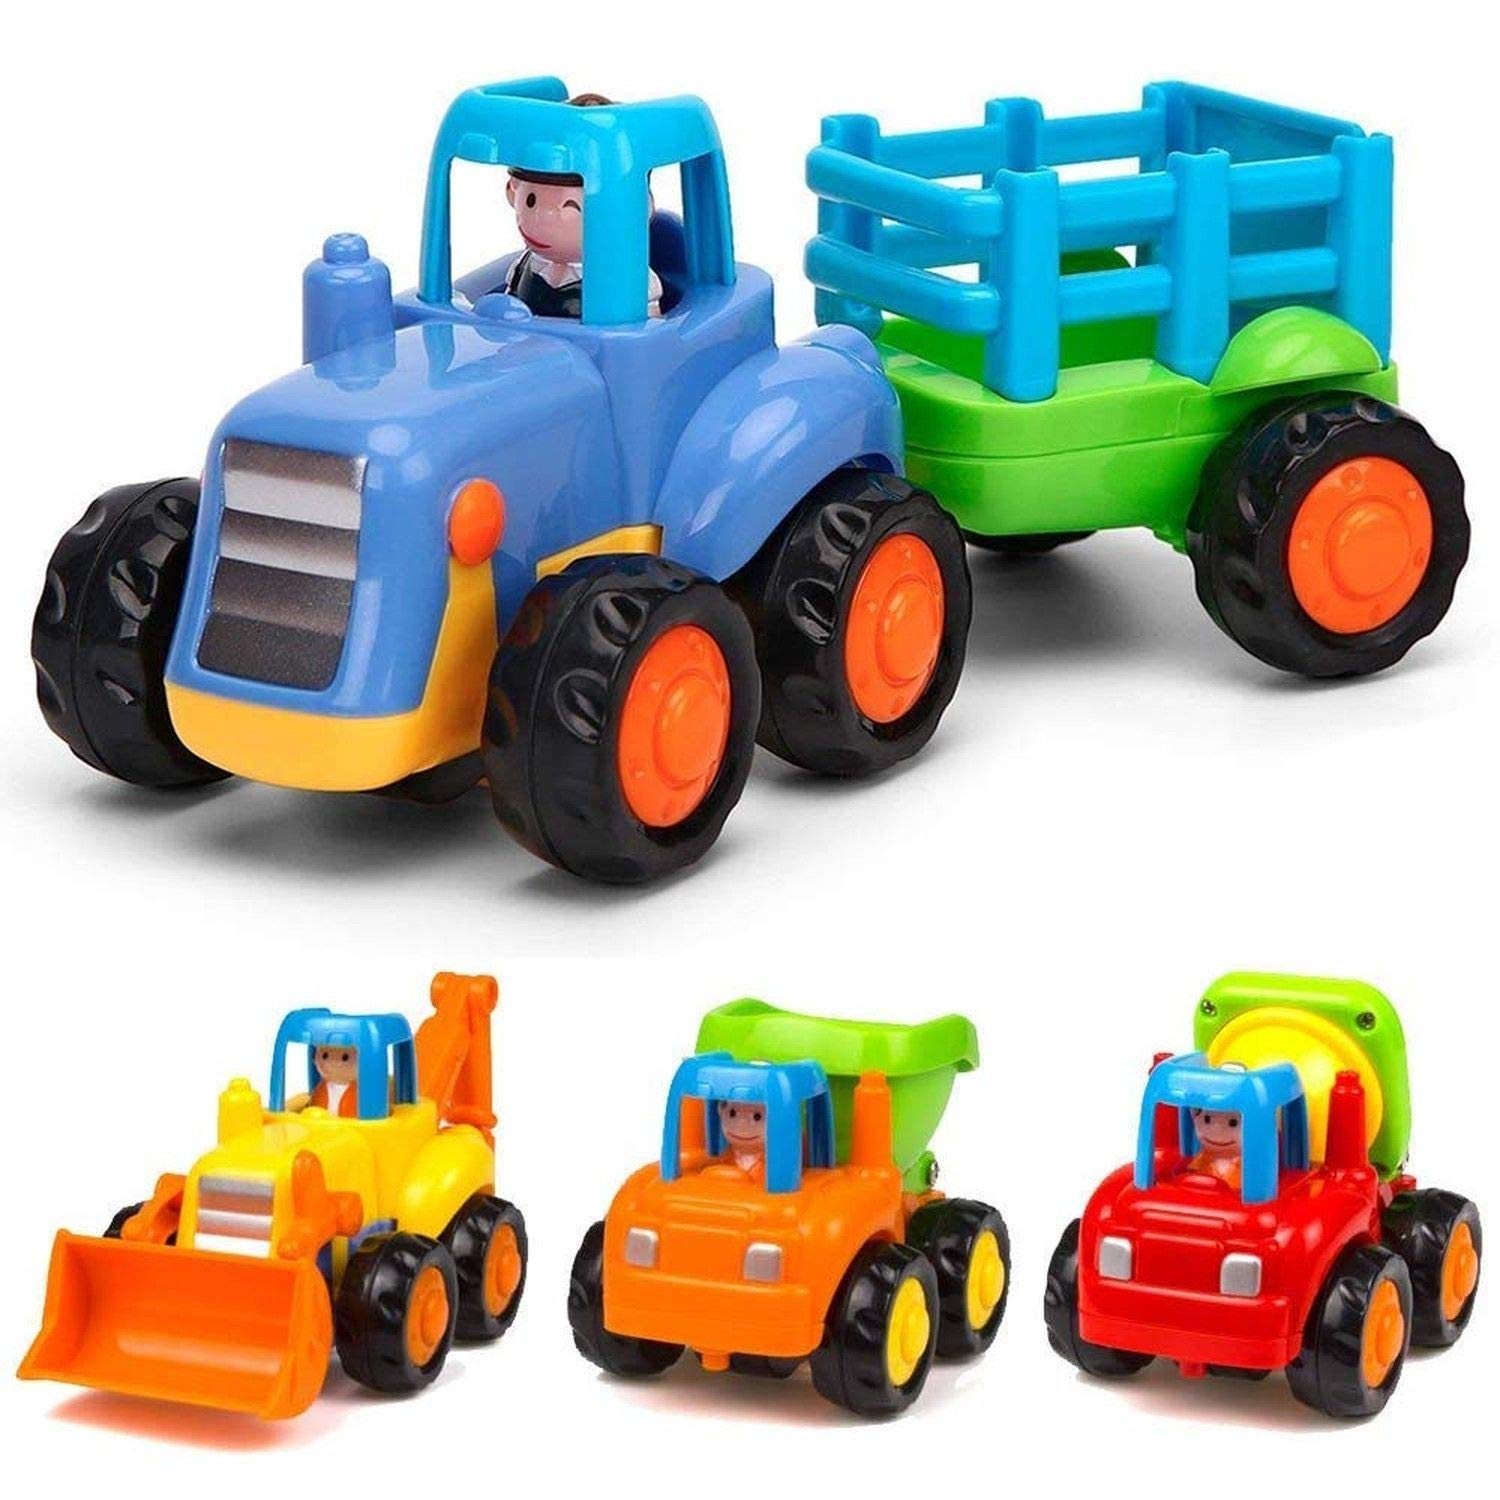 Toys Early Educational Toddler Baby Friction Powered Cars Push and Go Cars Tractor Bulldozer Dumper Cement Mixer Engineering Vehicles for Children Boys Girls Kids Gift